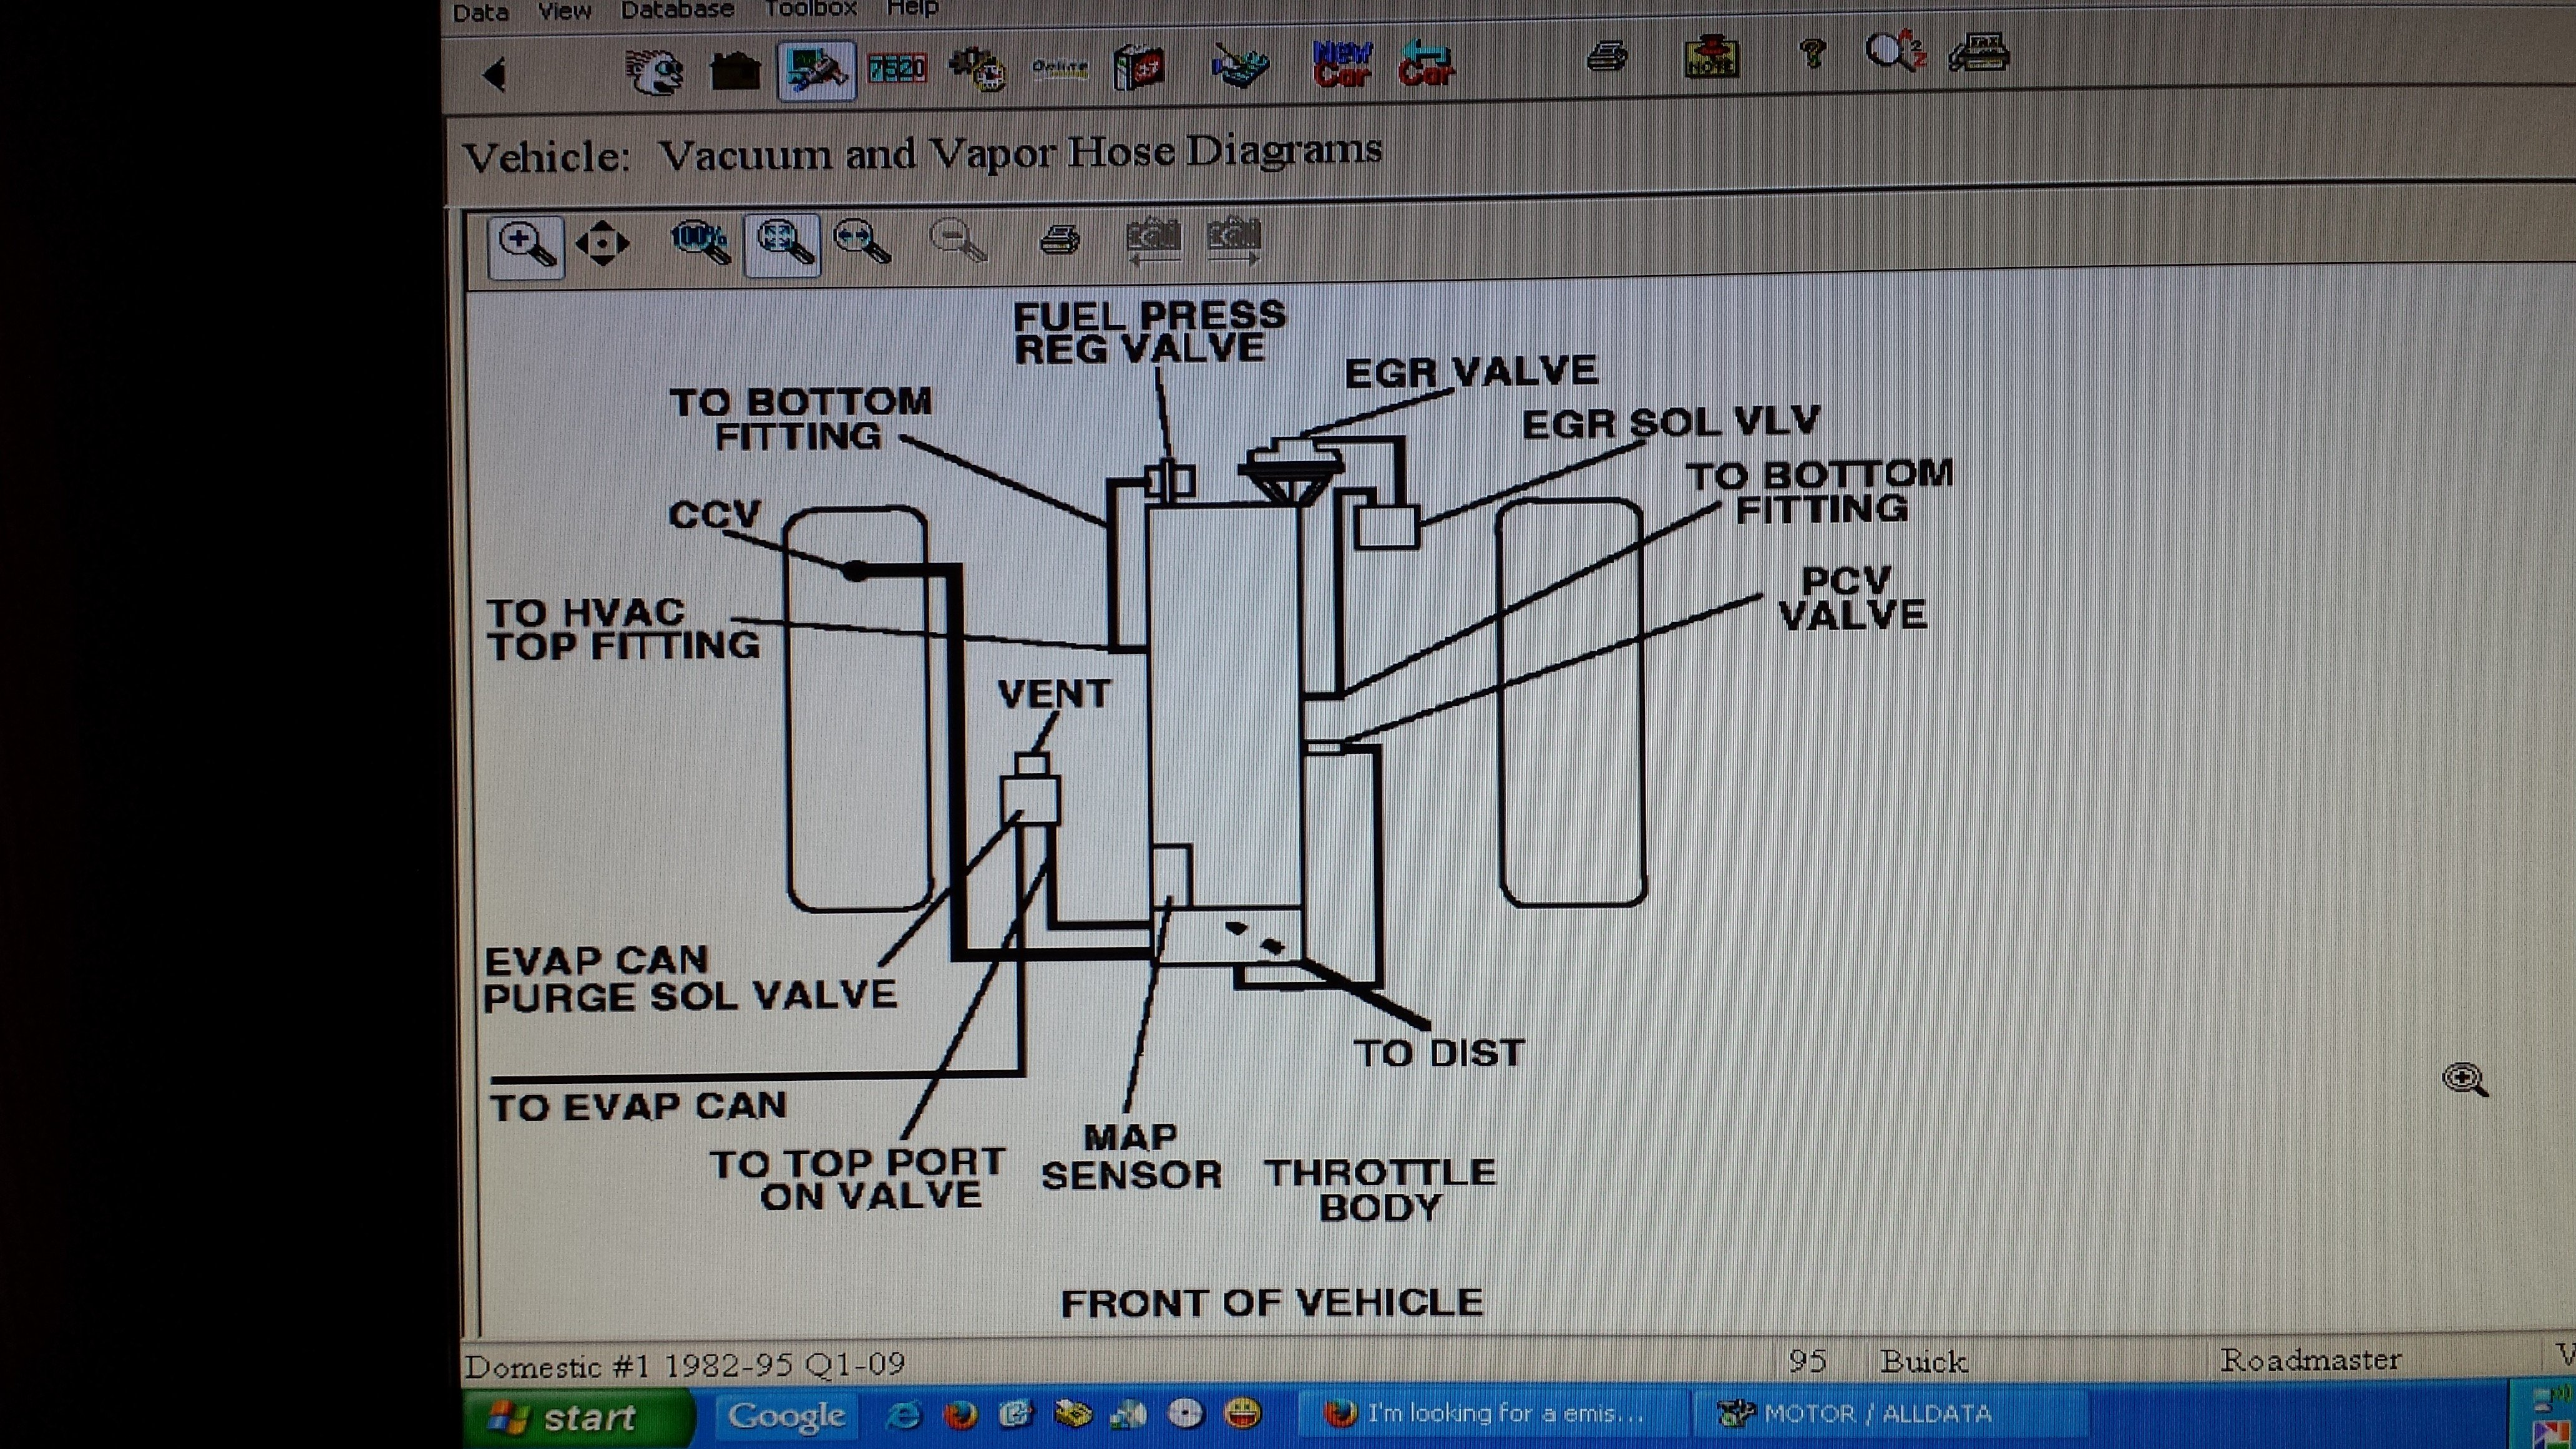 1995 Buick Riviera Vacuum Diagram Reveolution Of Wiring 95 Engine I M Looking For A Emissions Schematic Rh Justanswer Com 2000 1997